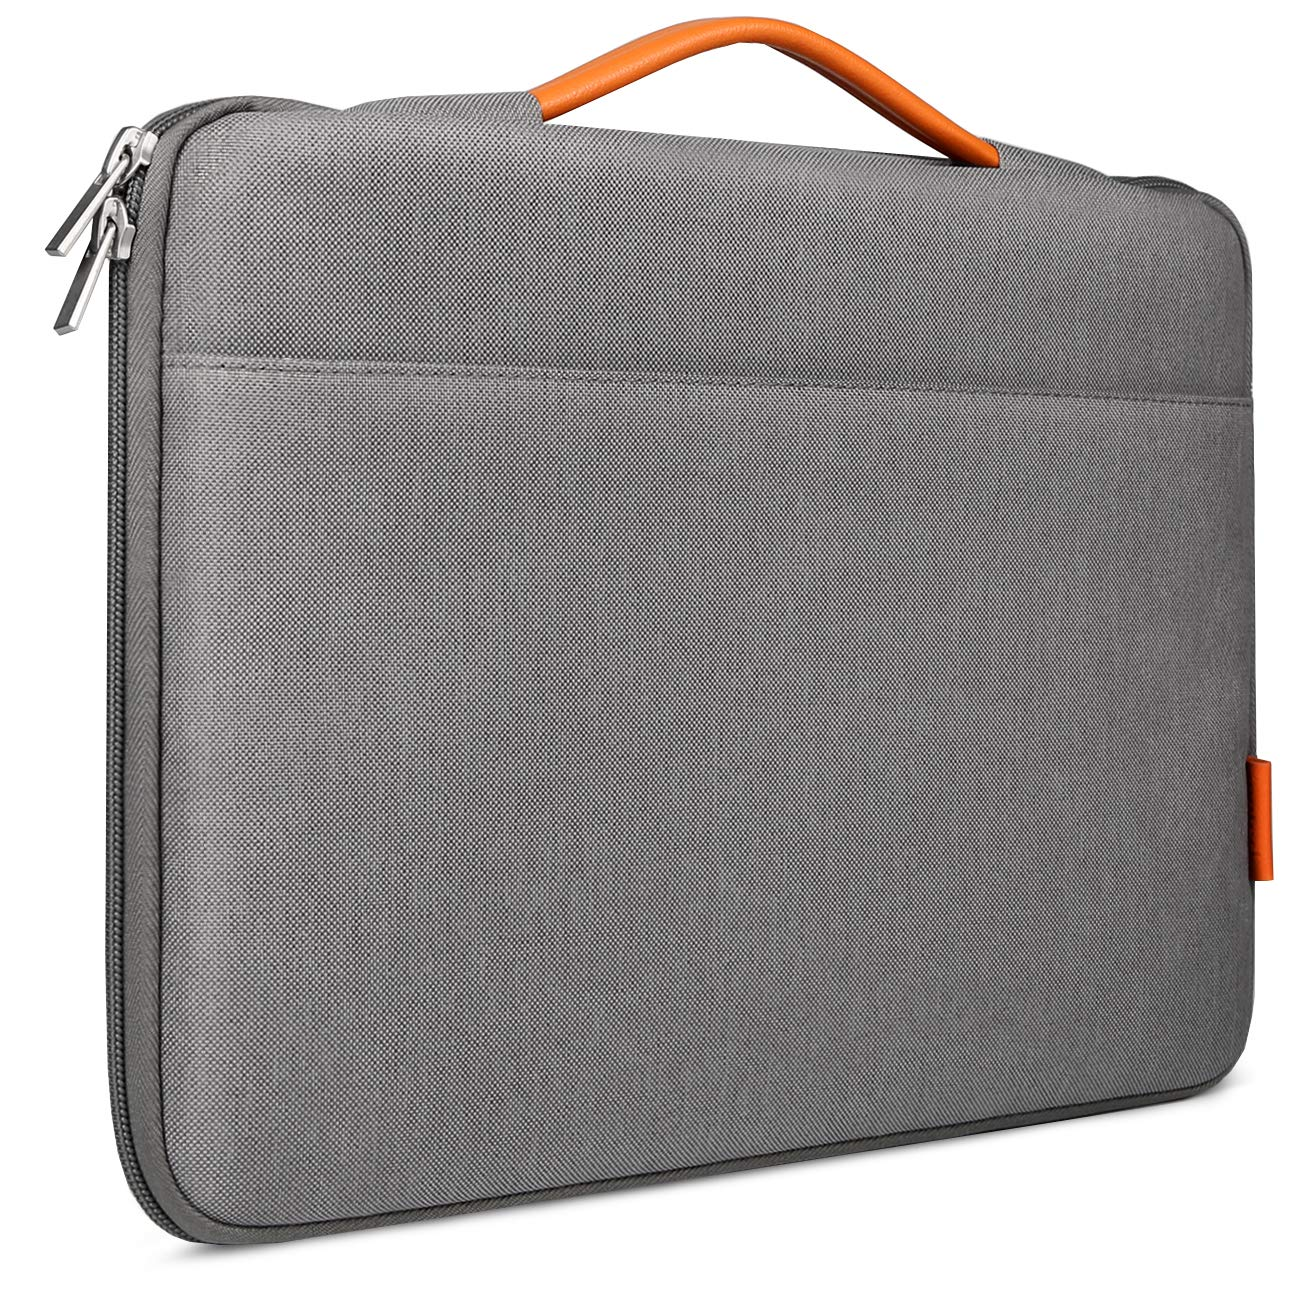 b9a233b2c0bc Inateck 14-14.1 Inch Laptop Sleeve Protective Bag Ultrabook Netbook  Carrying Case Compatible 14 ThinkPad, 15'' MacBook Pro 2016-2018, Dell  Inspiron, ...